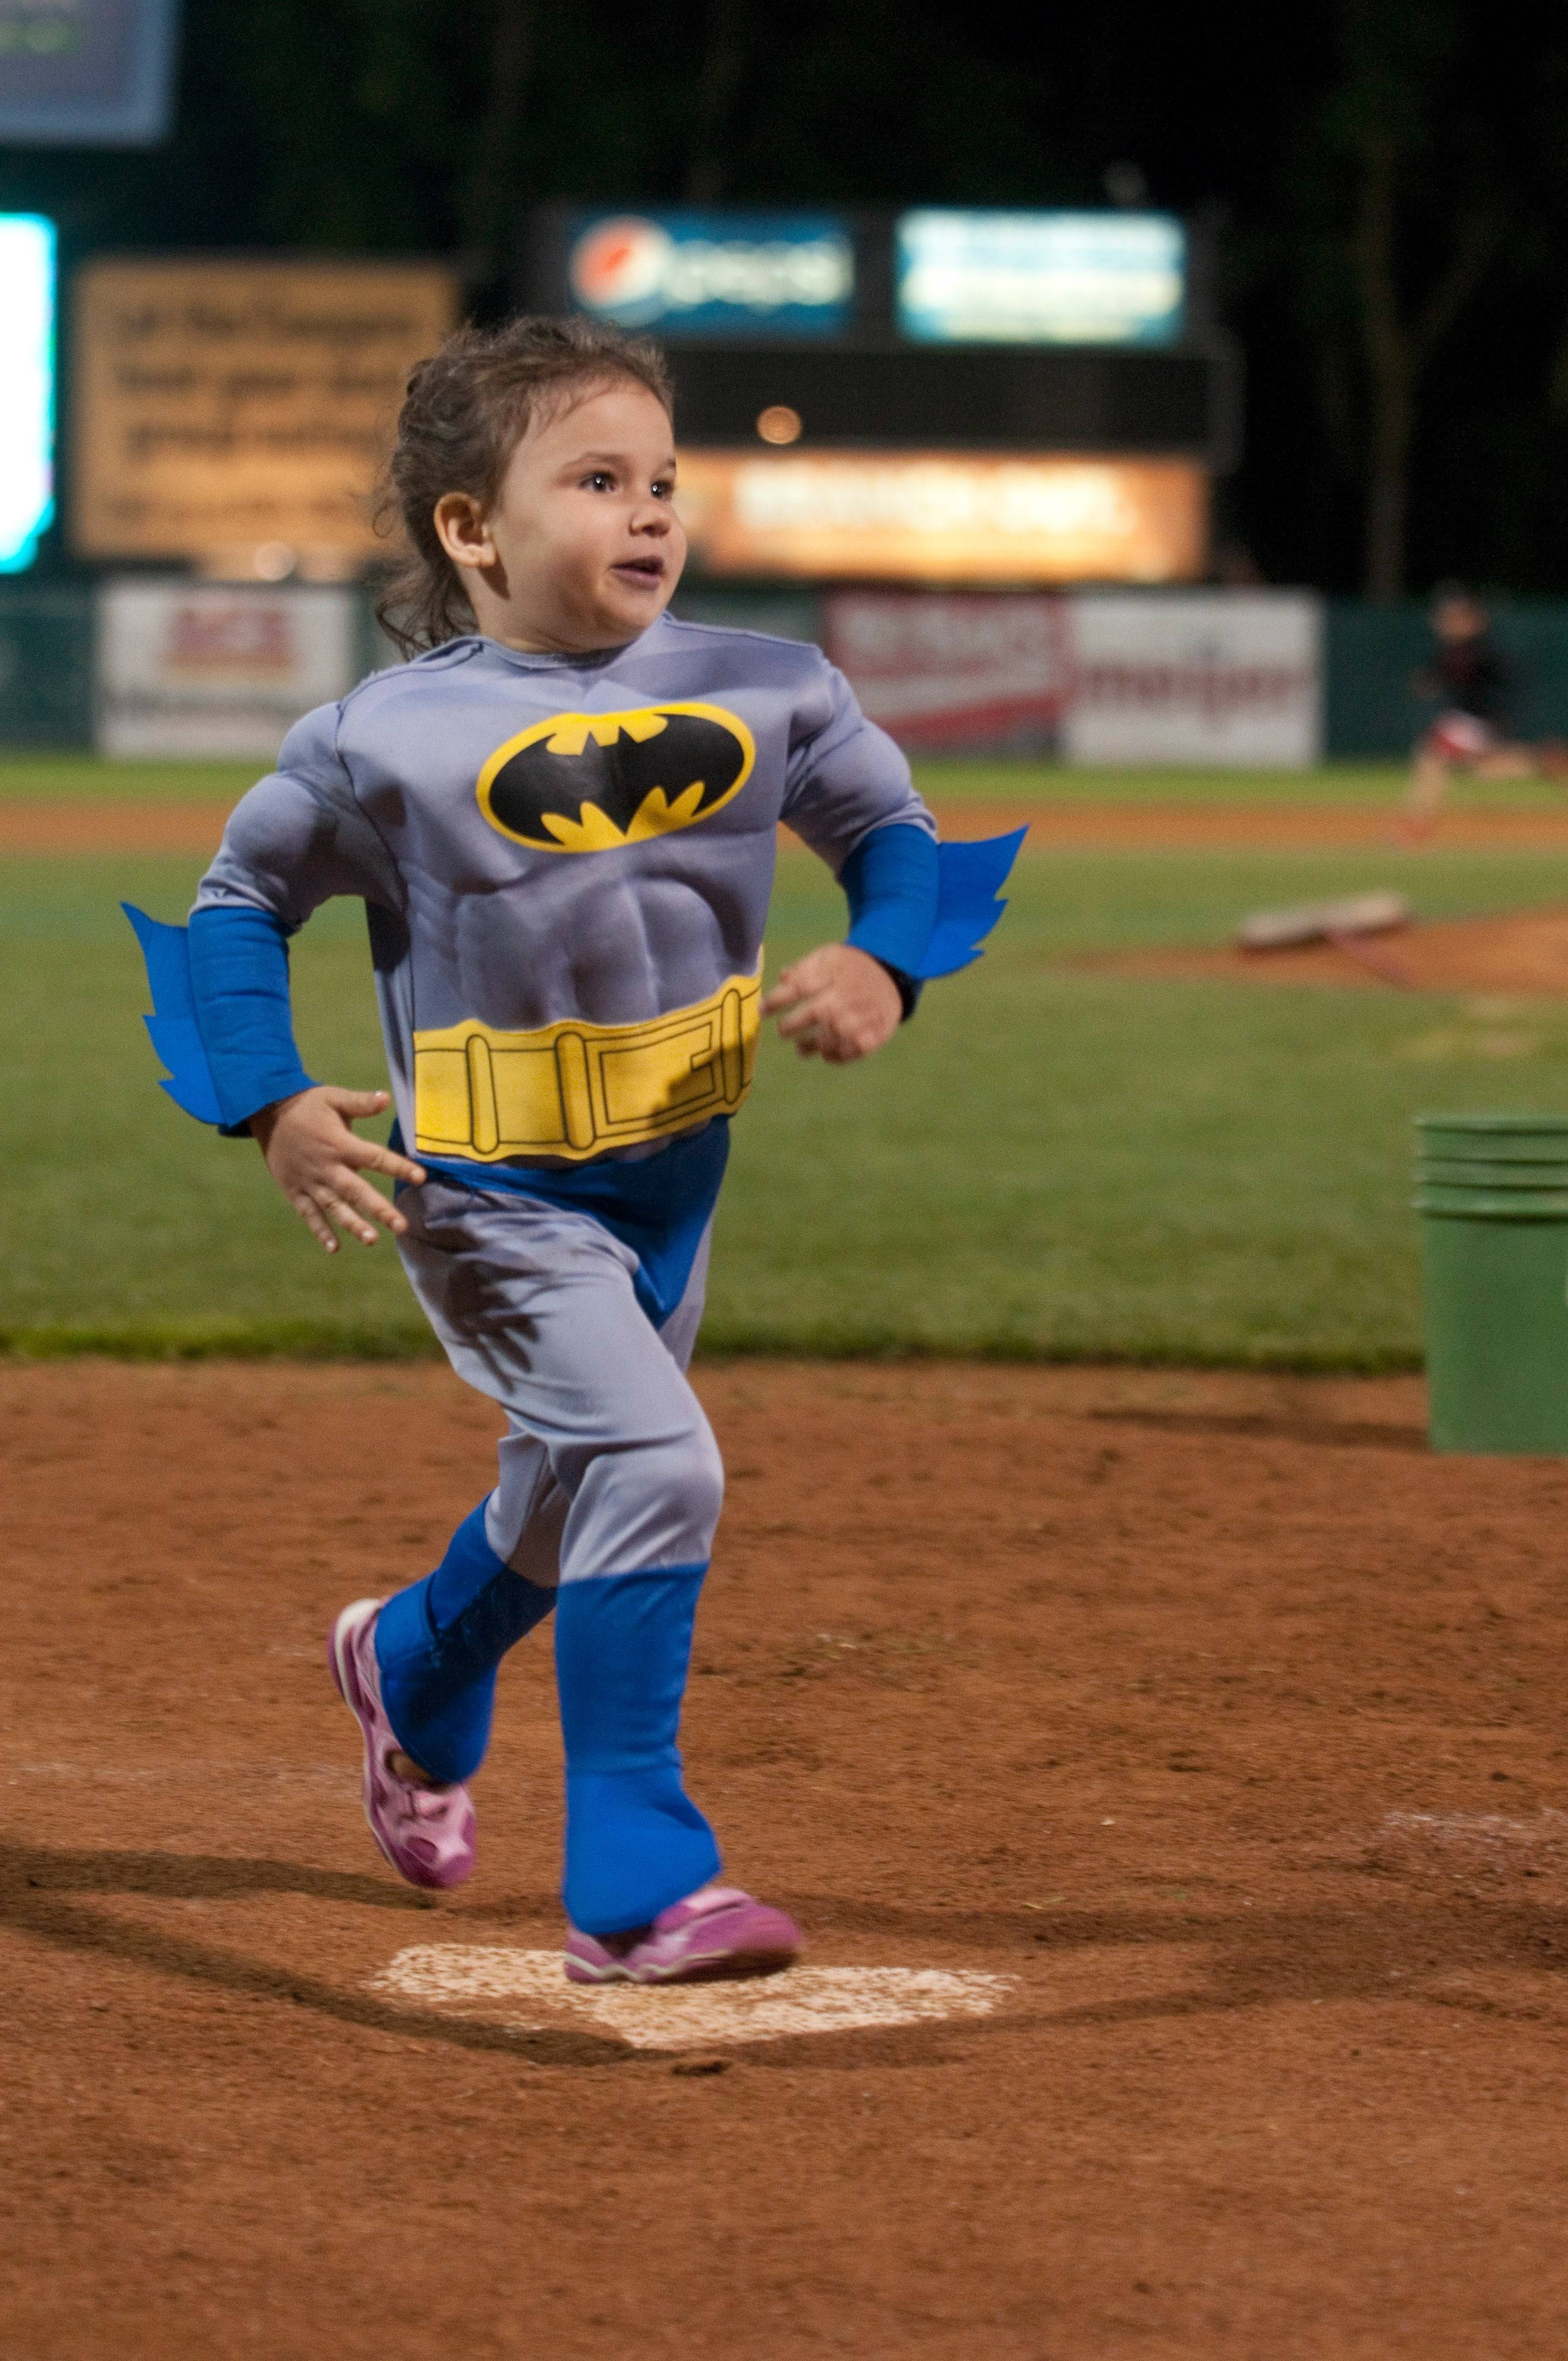 Theme nights are part of the fun at Kane County Cougars games in Geneva.